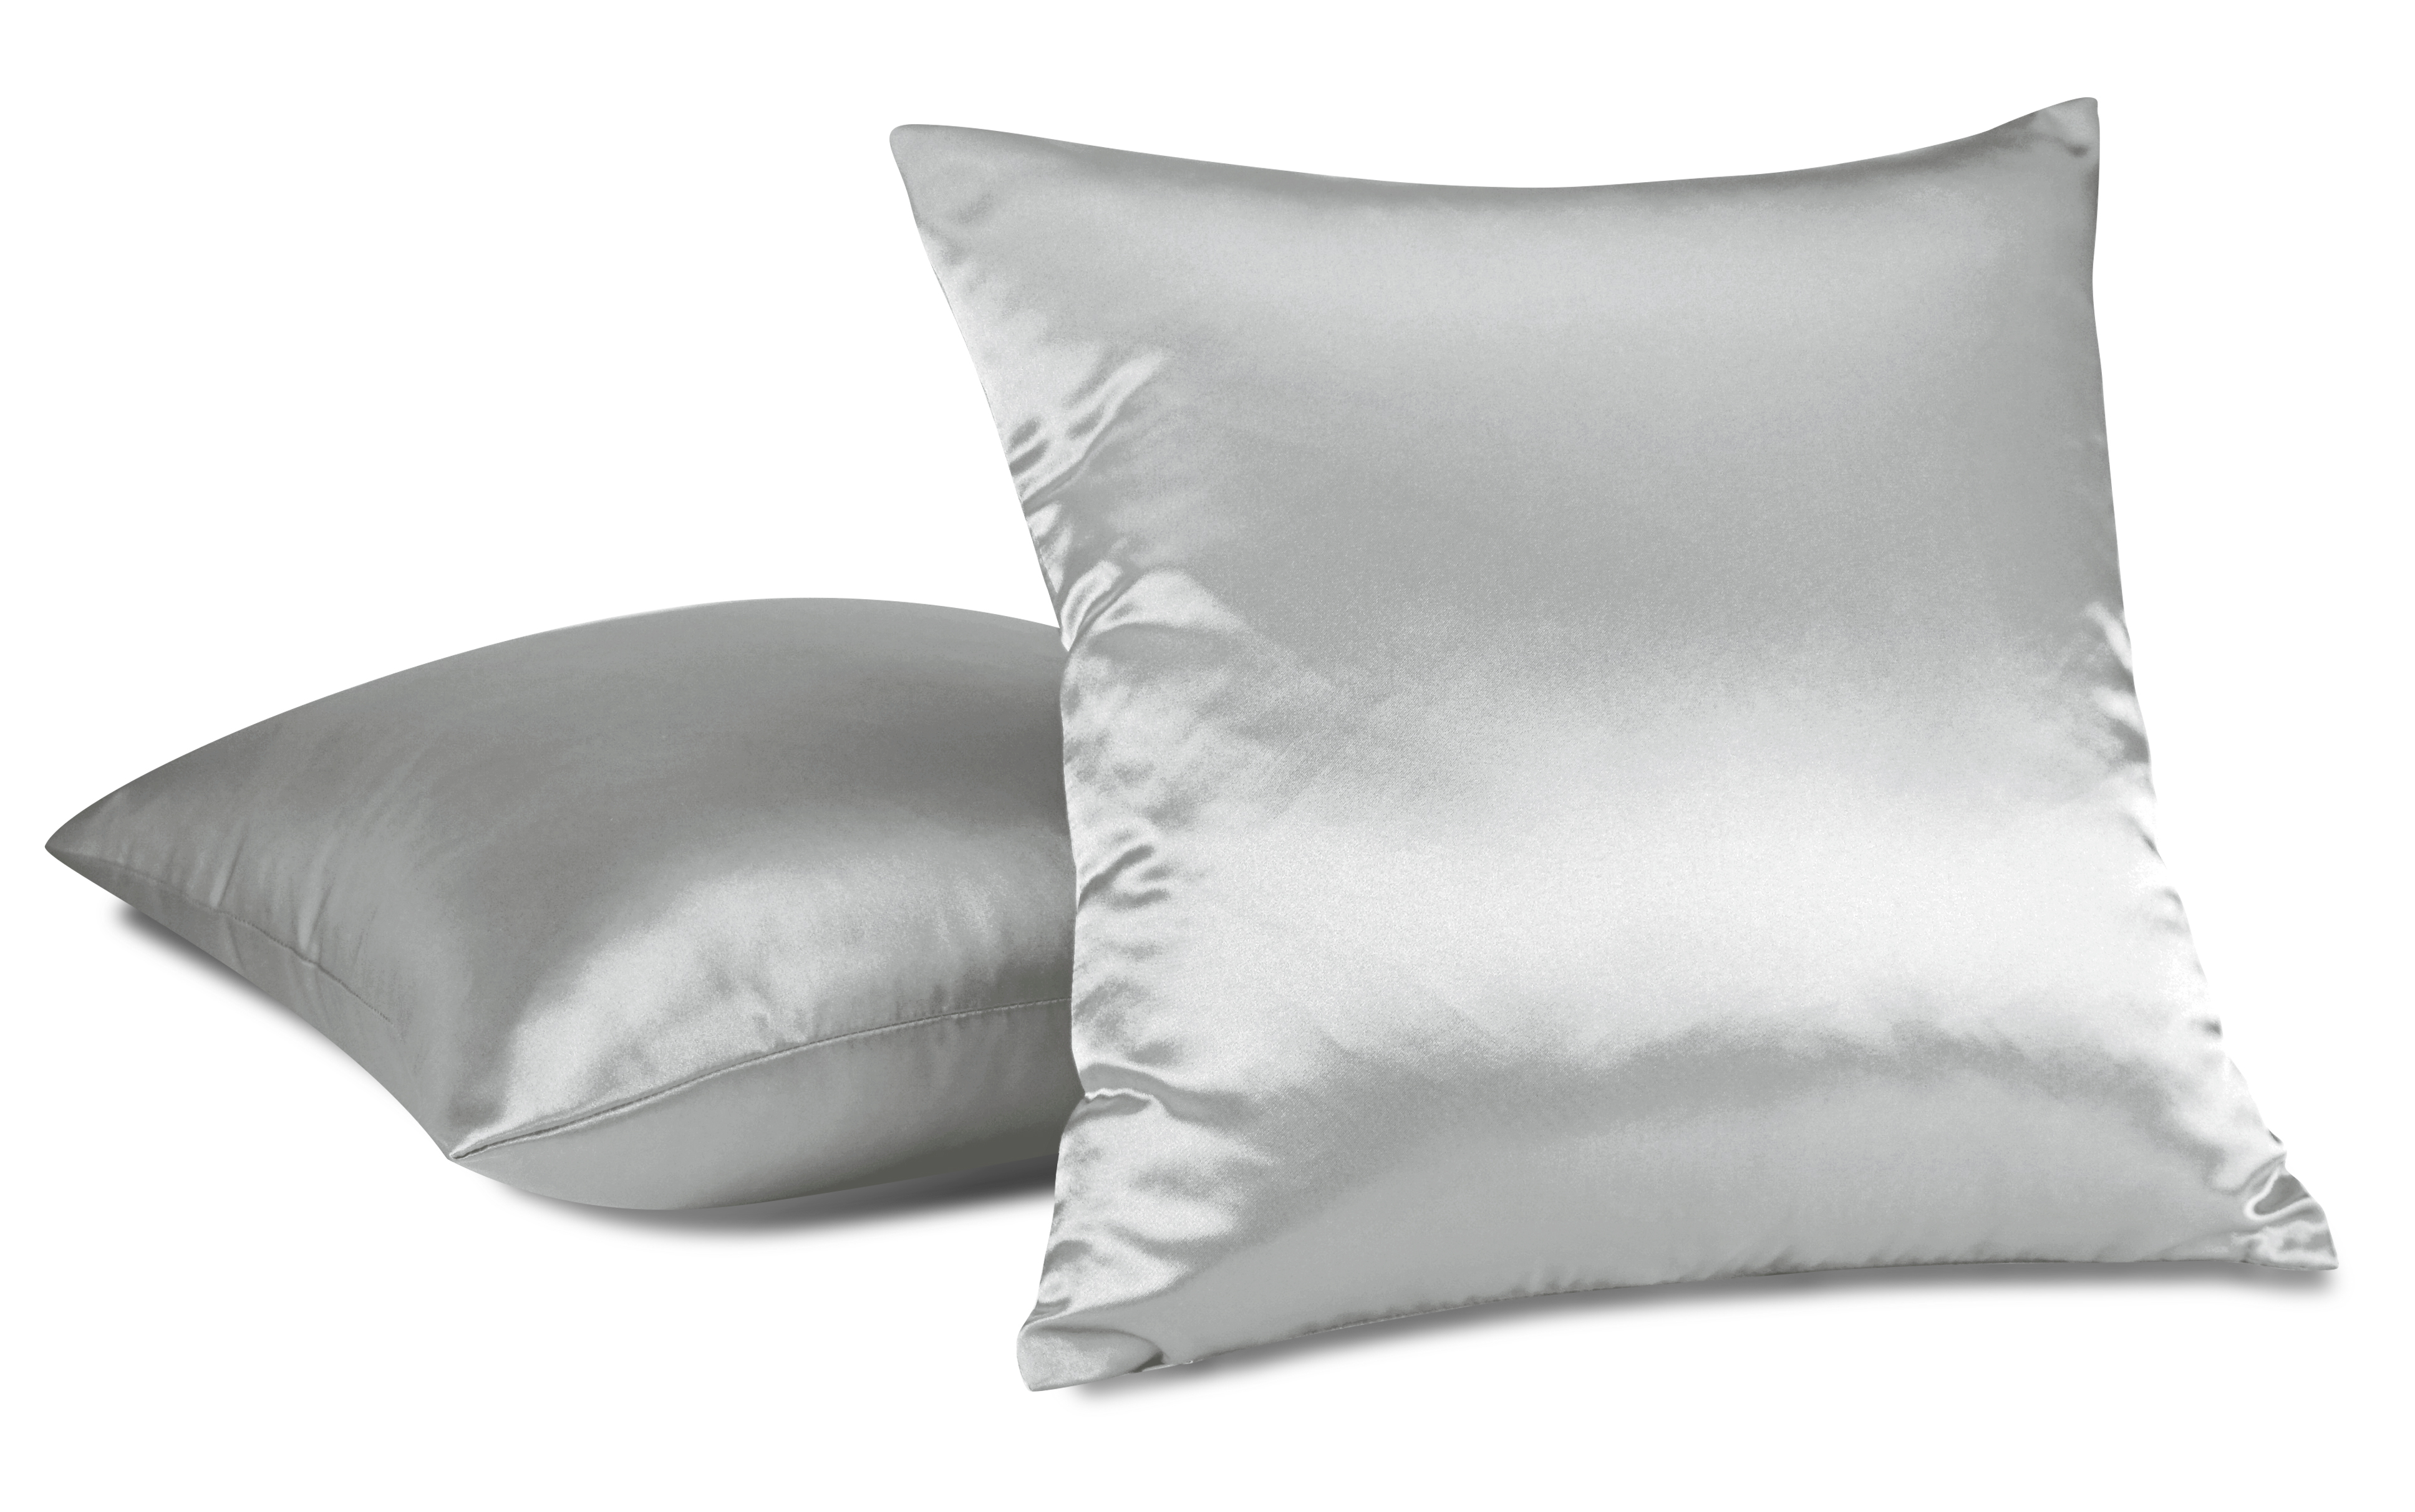 aiking home 2 of colorful shiny satin euro shams pillow covers 18 by 18 silver